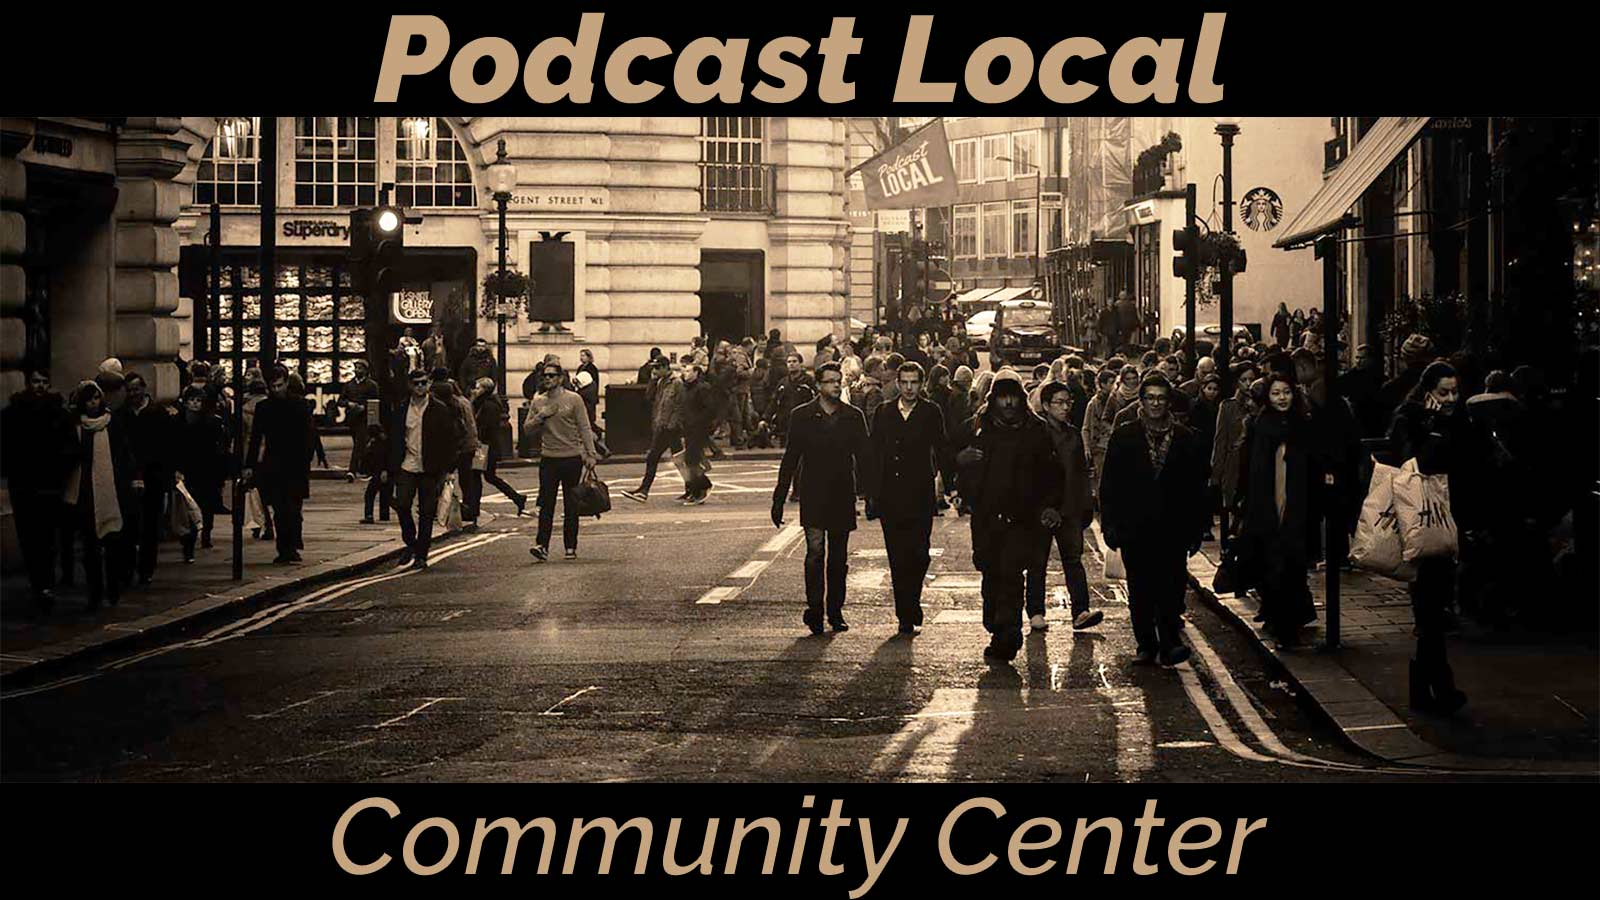 Podcast Local Community Center. a Facebook group where Podcast Local listeners gather to share their own stories of making a local podcast.